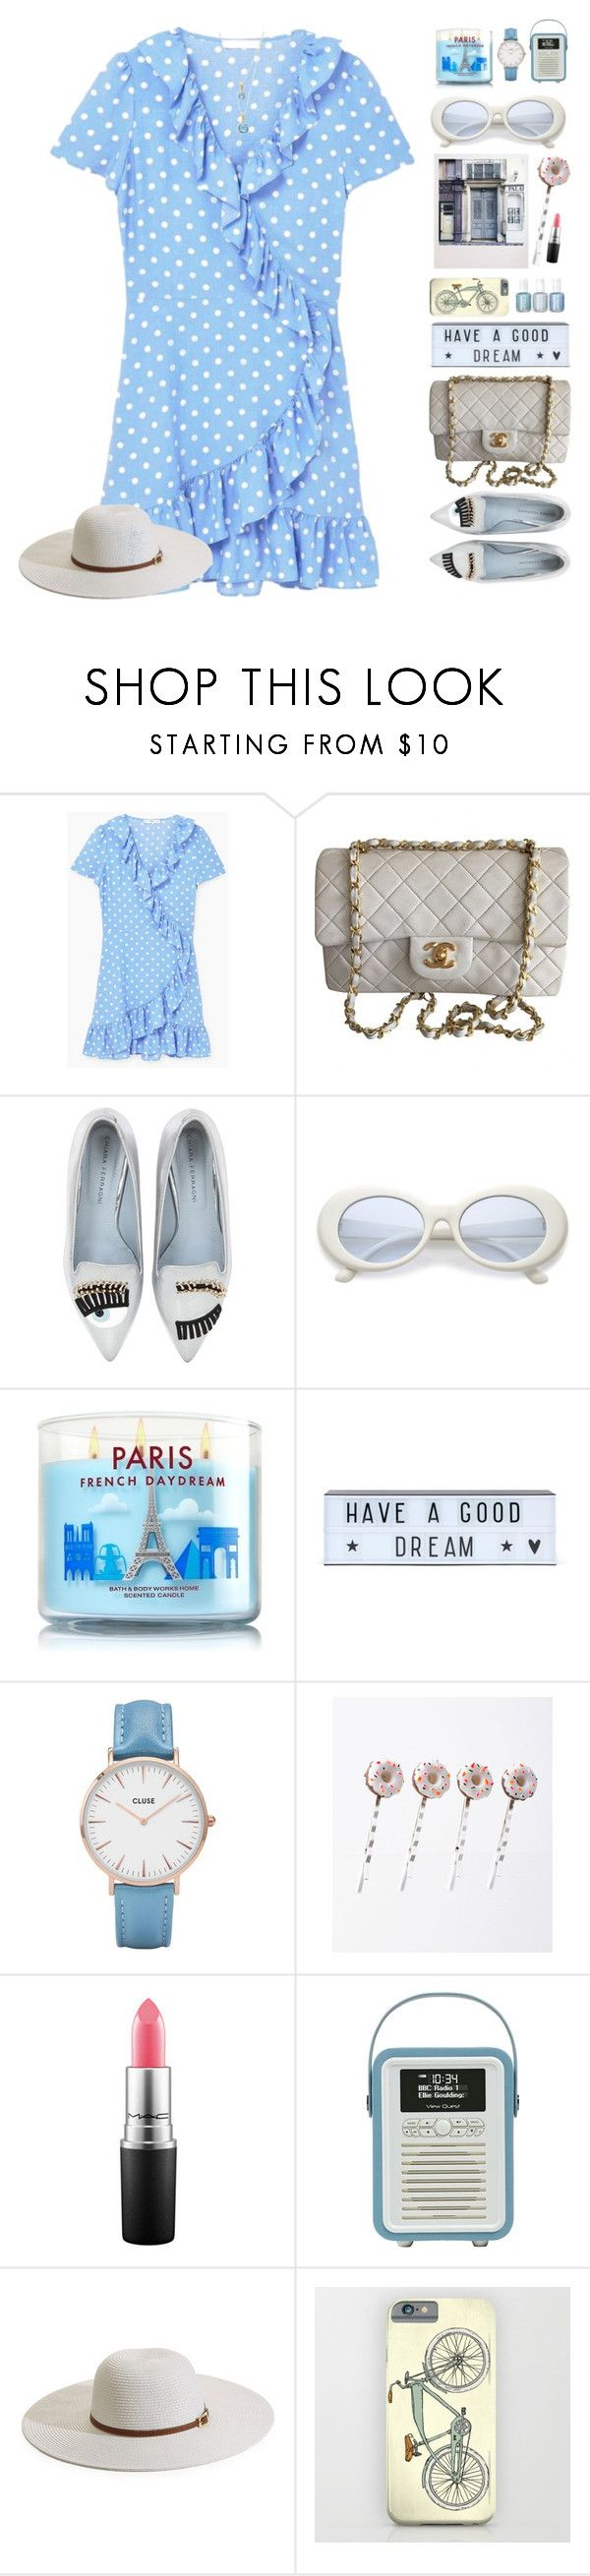 """Retro Chic"" by doga1 ❤ liked on Polyvore featuring Polaroid, MANGO, Chanel, Chiara Ferragni, A Little Lovely Company, CLUSE, MAC Cosmetics, Melissa Odabash, Gurhan and under100"